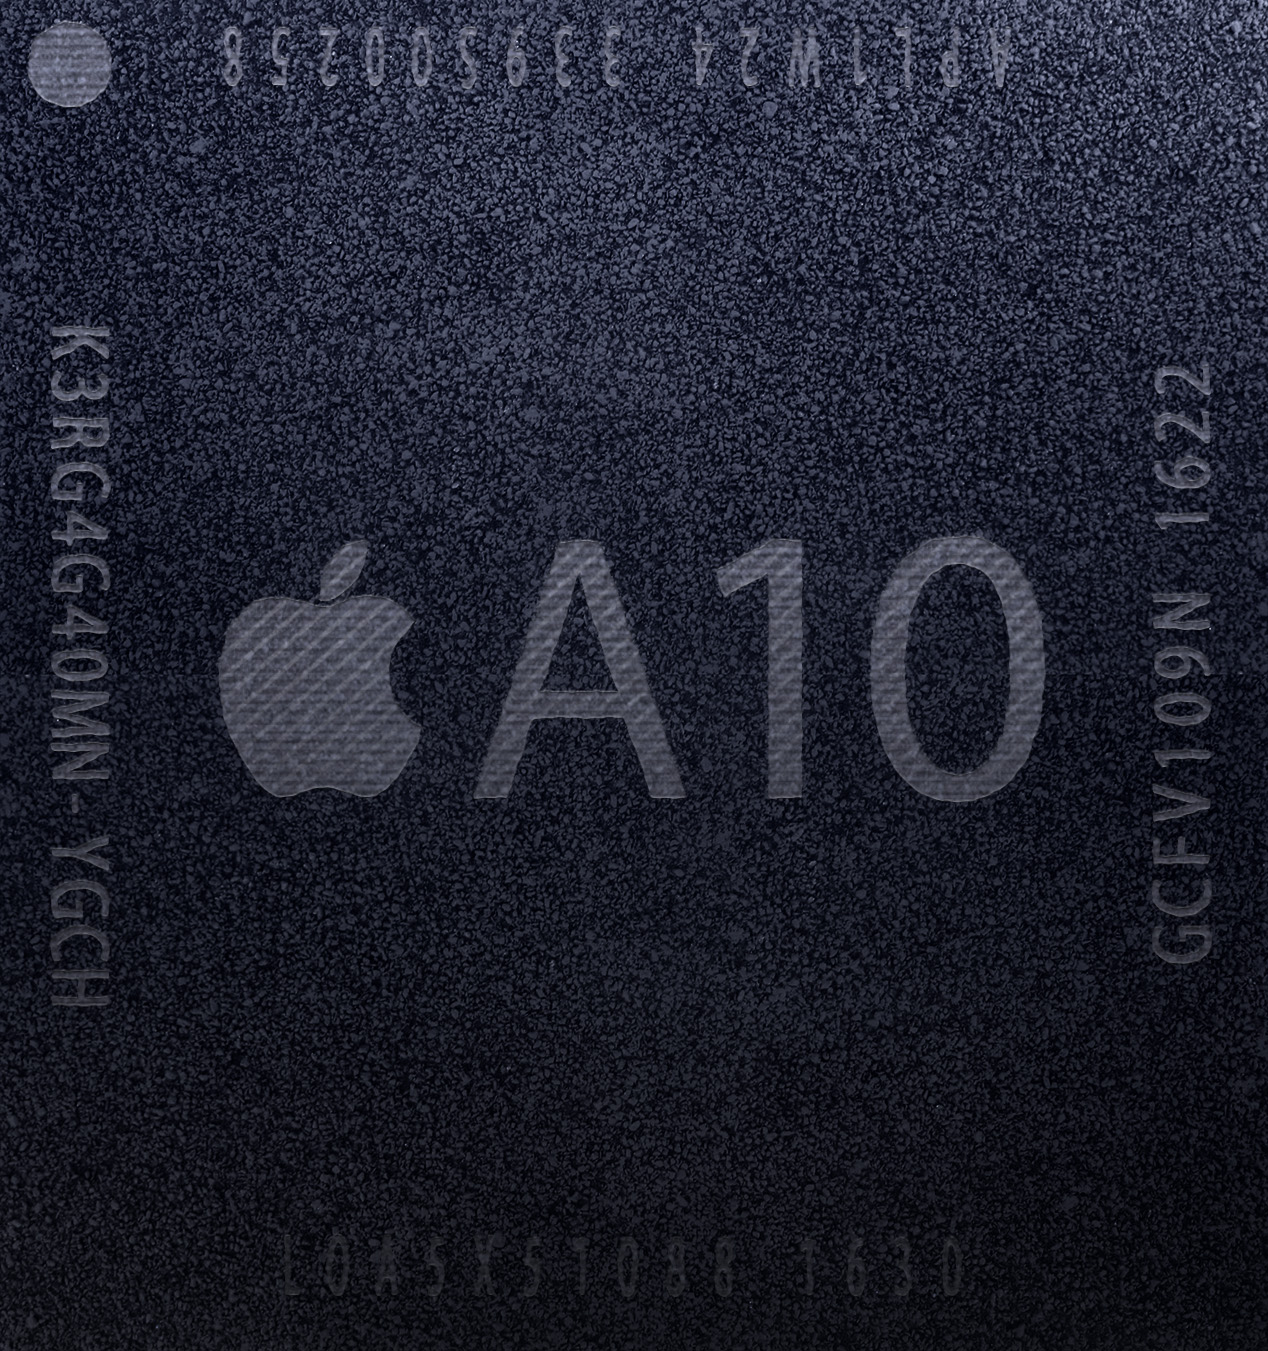 A10 Fusion Chip from Apple